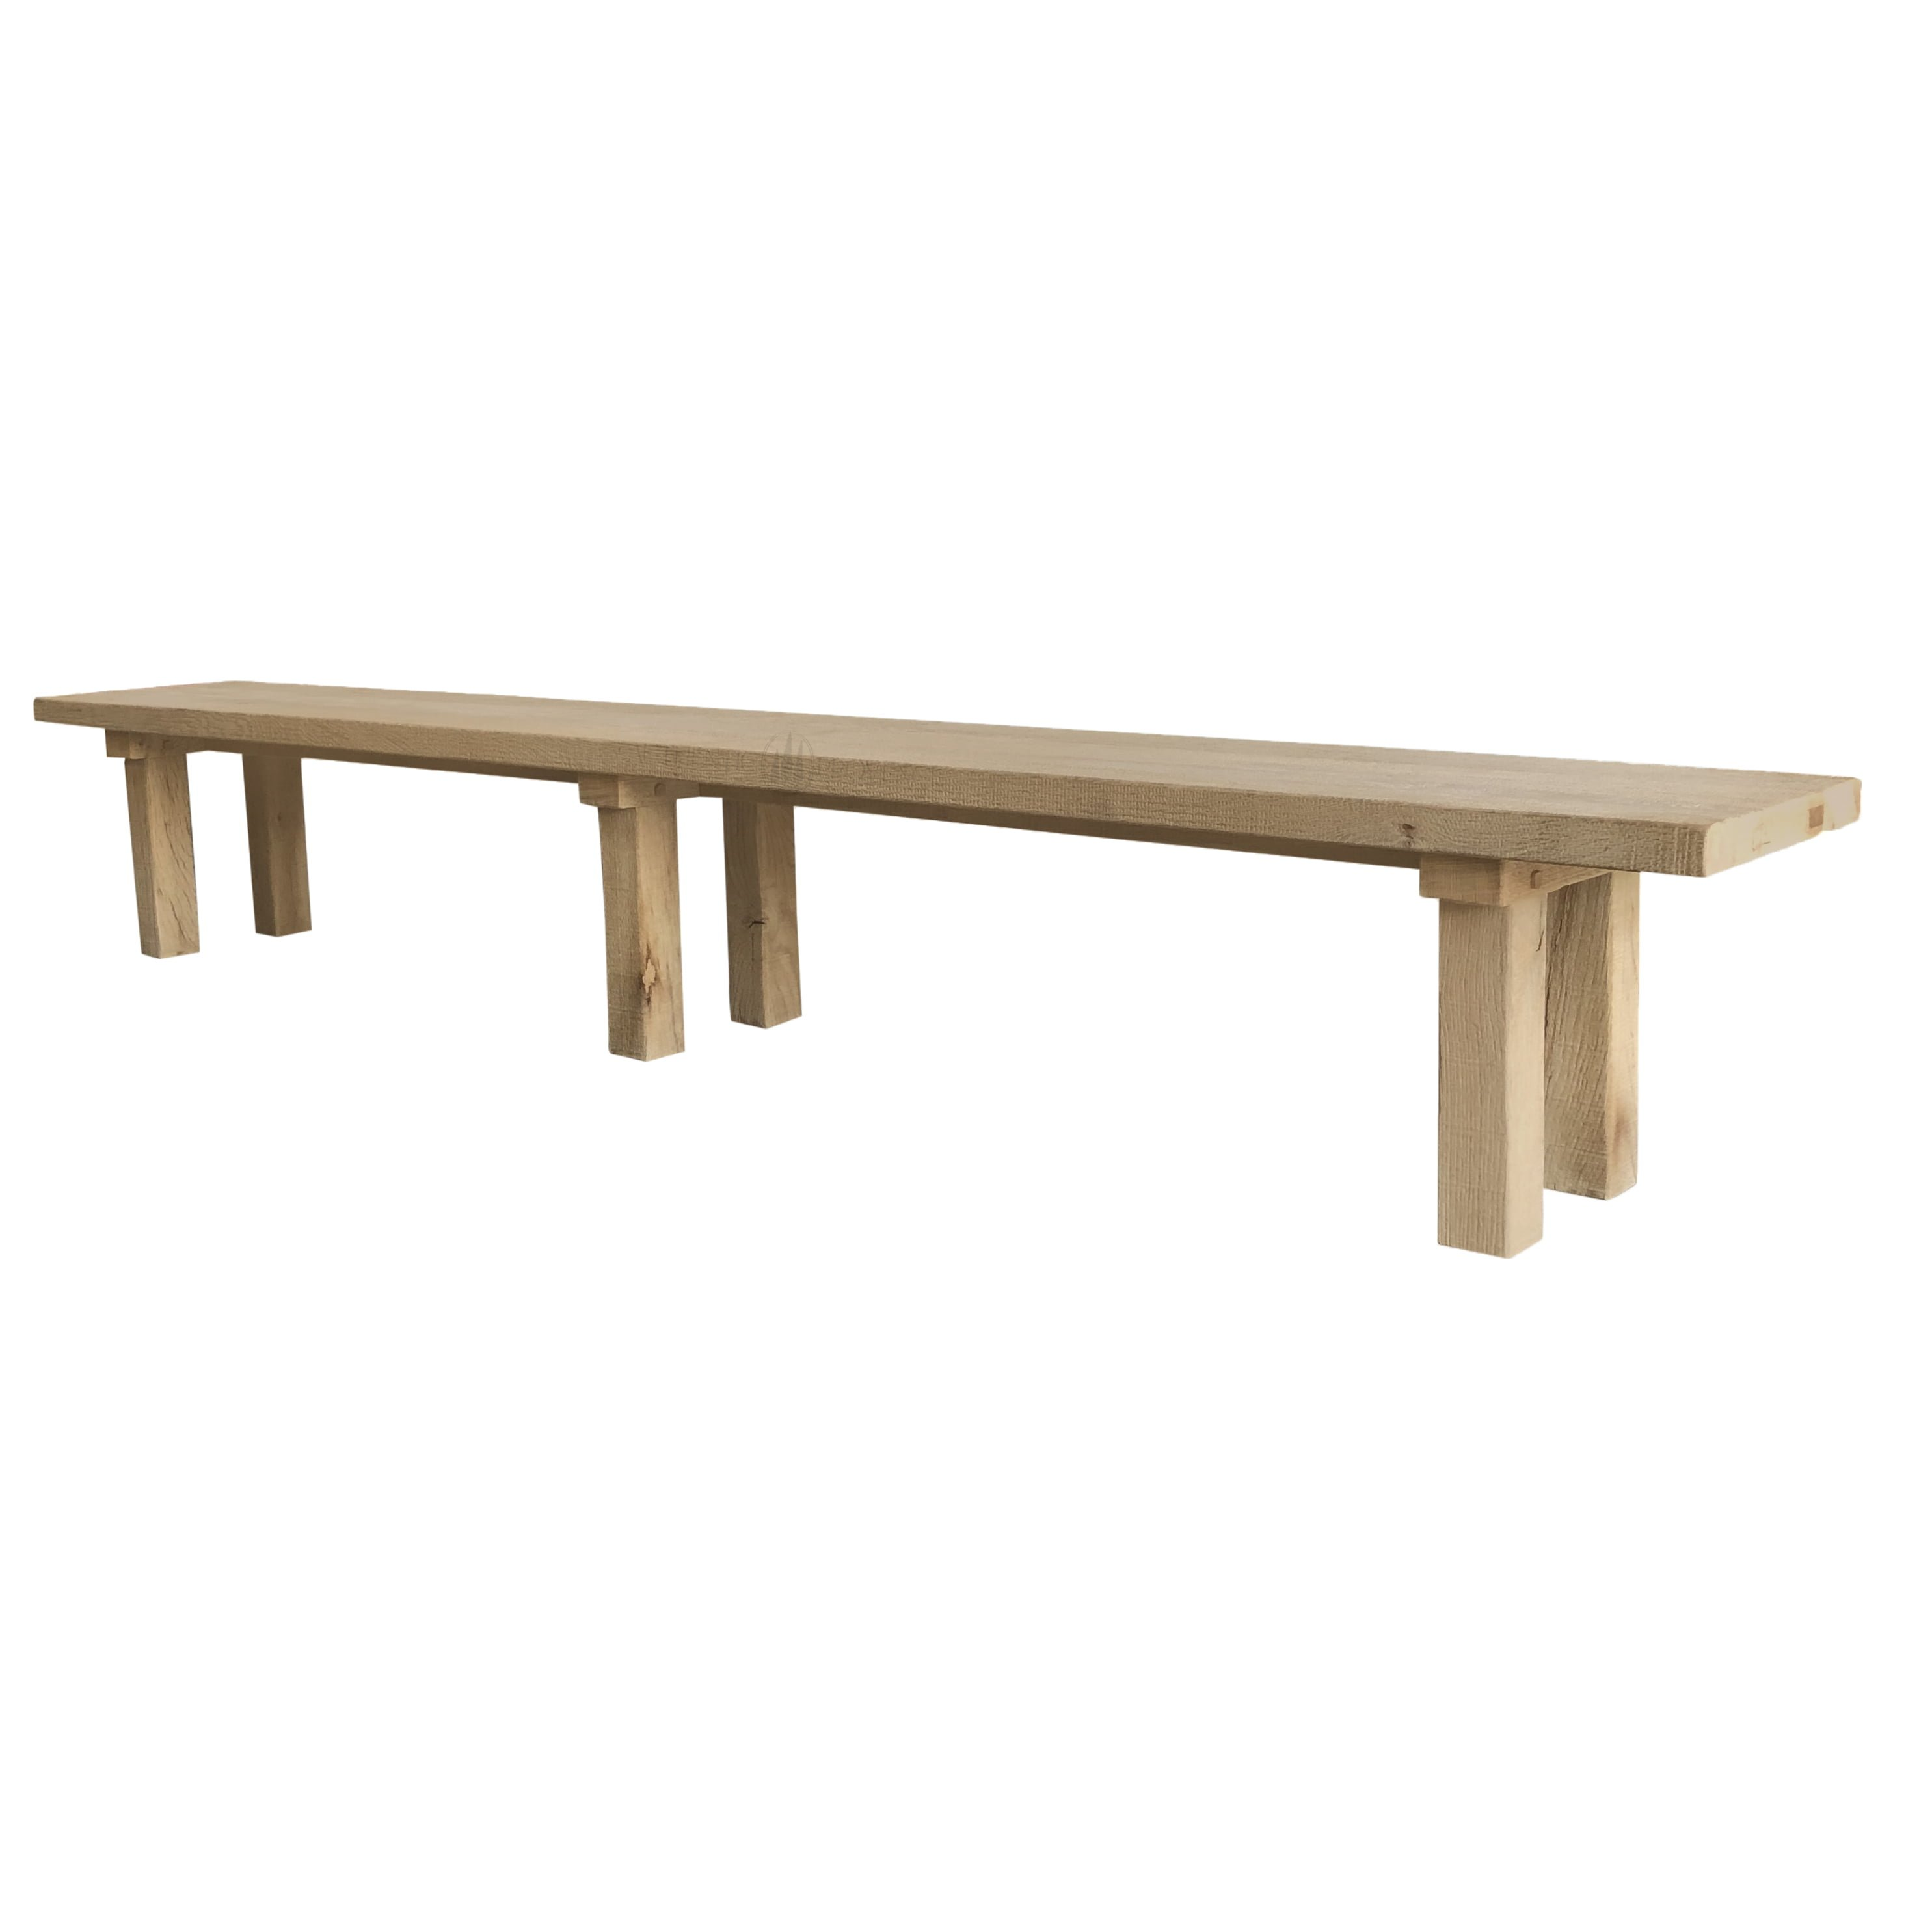 Pair of Barres Benches